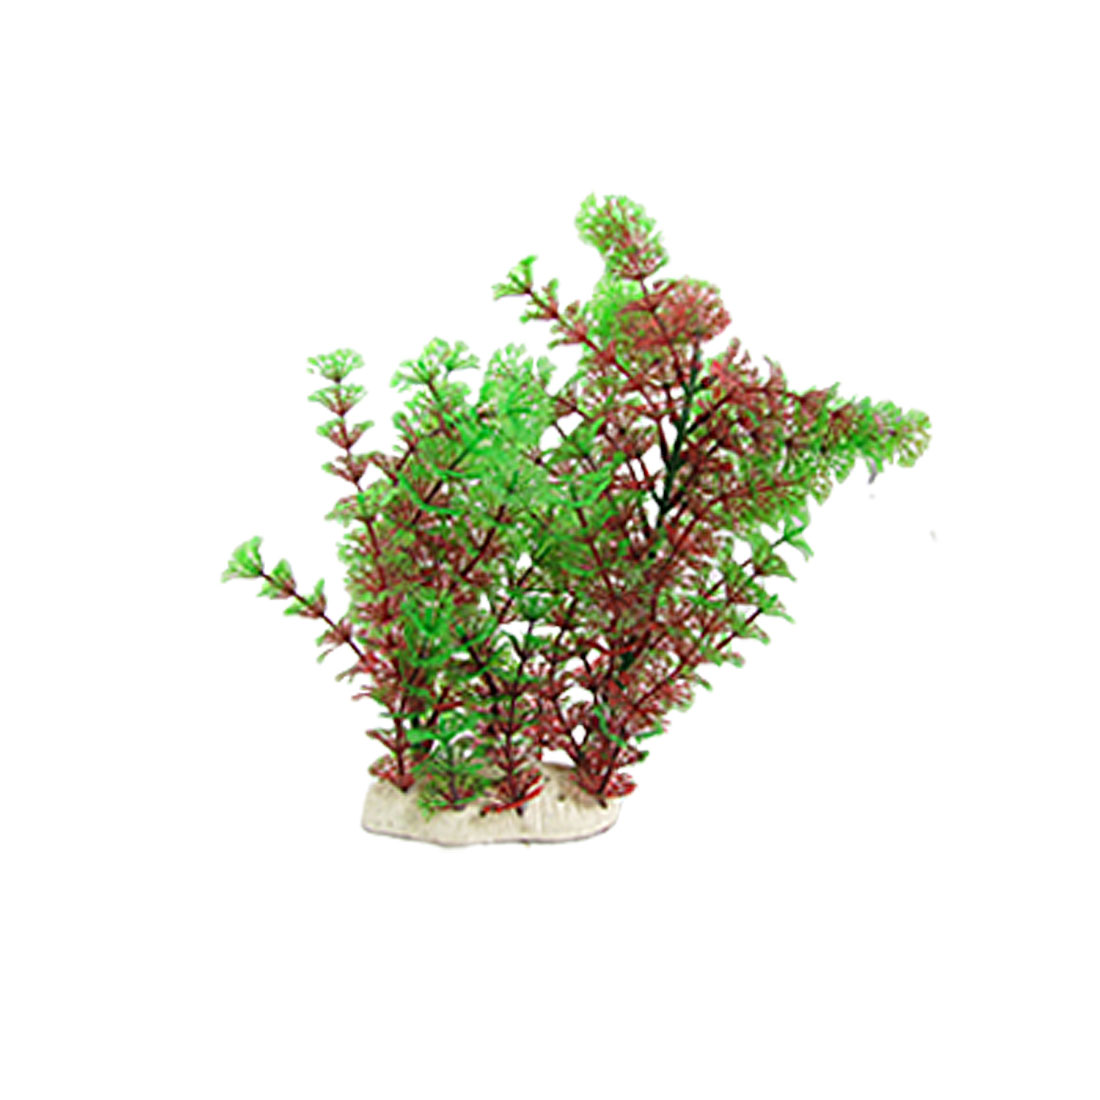 Two-Tone Plastic Aquatic Plants Fish Tank Aquarium Decoration